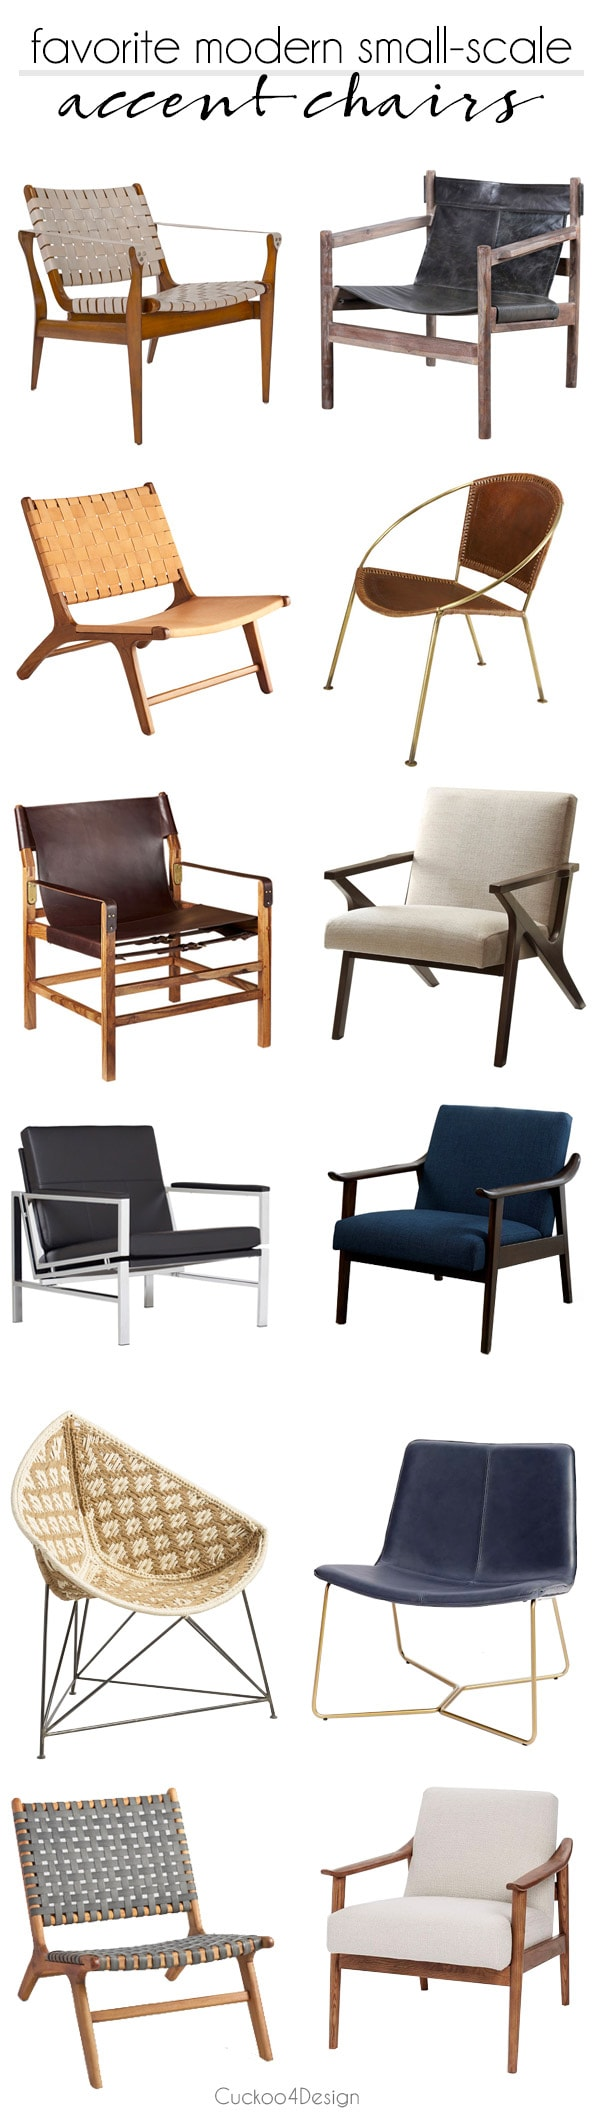 a selection of my favorite low profile modern small-scale accent chairs | leather slingback chairs | midcentury modern living room chairs | small-scaled living room chairs | metal frame accent chair | wood frame accent chairs | #accentchairs #livingroomchairs #livingroomaccentchairs